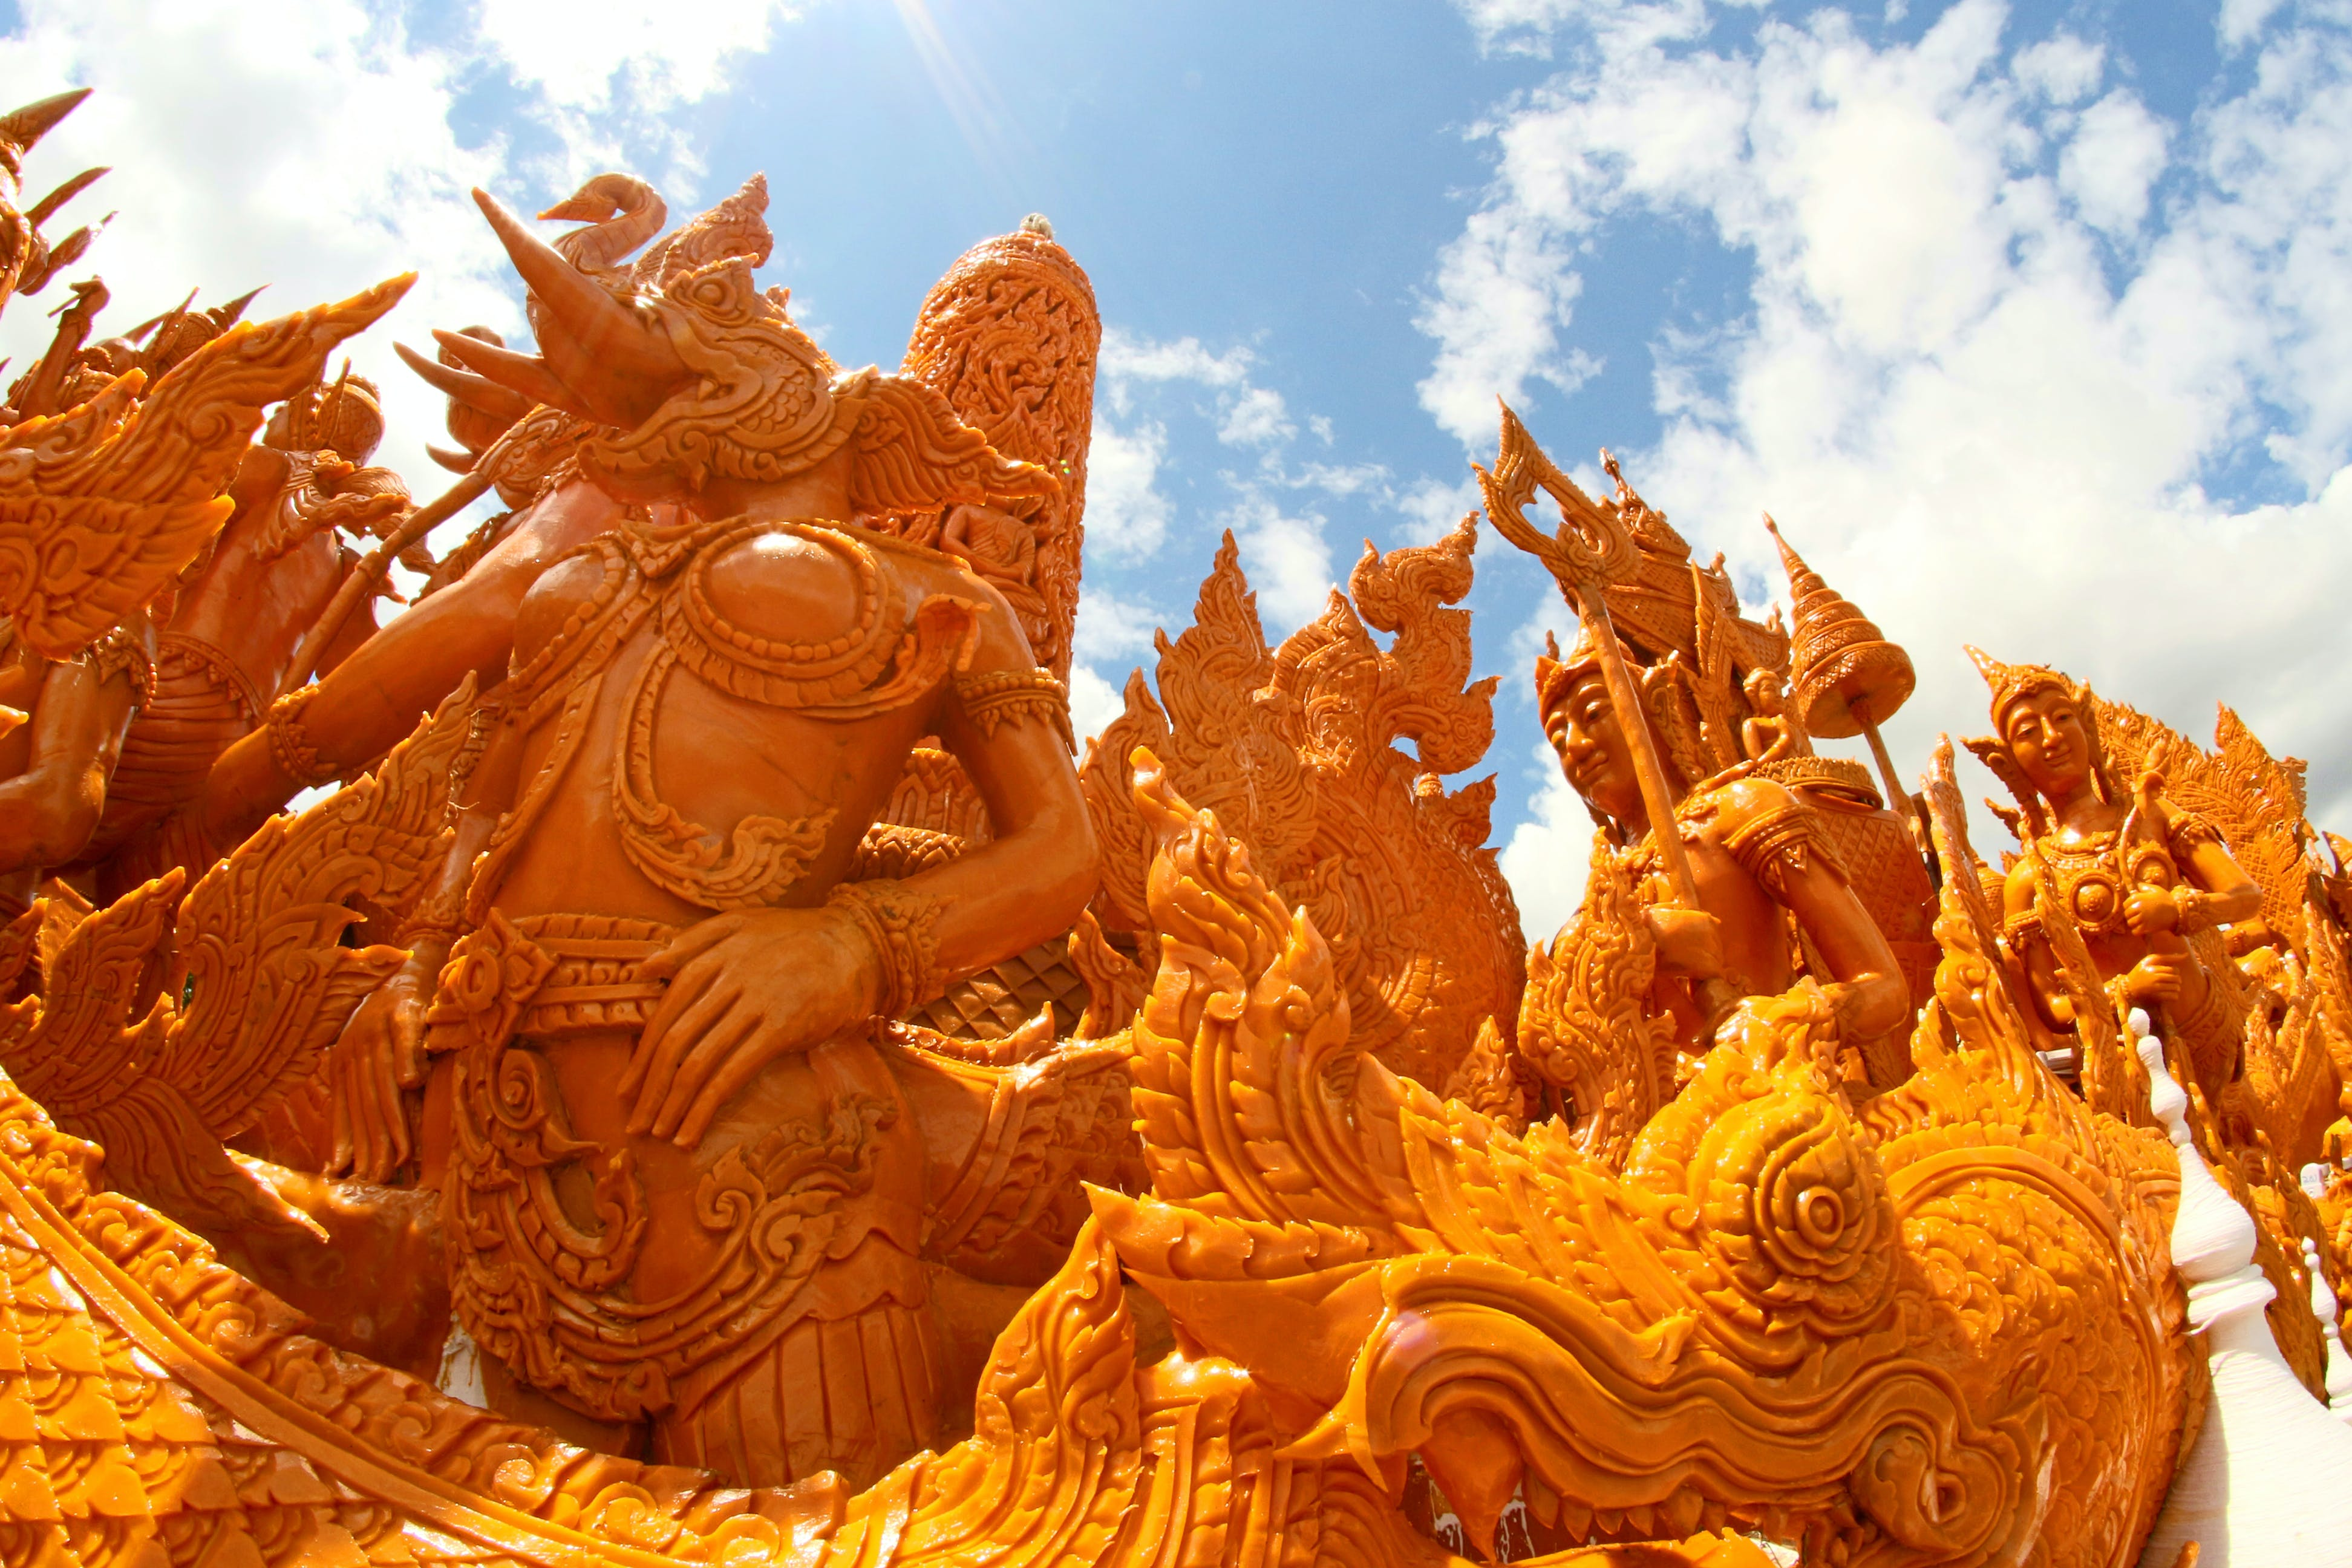 Golden Character Statues Under Blue Sky